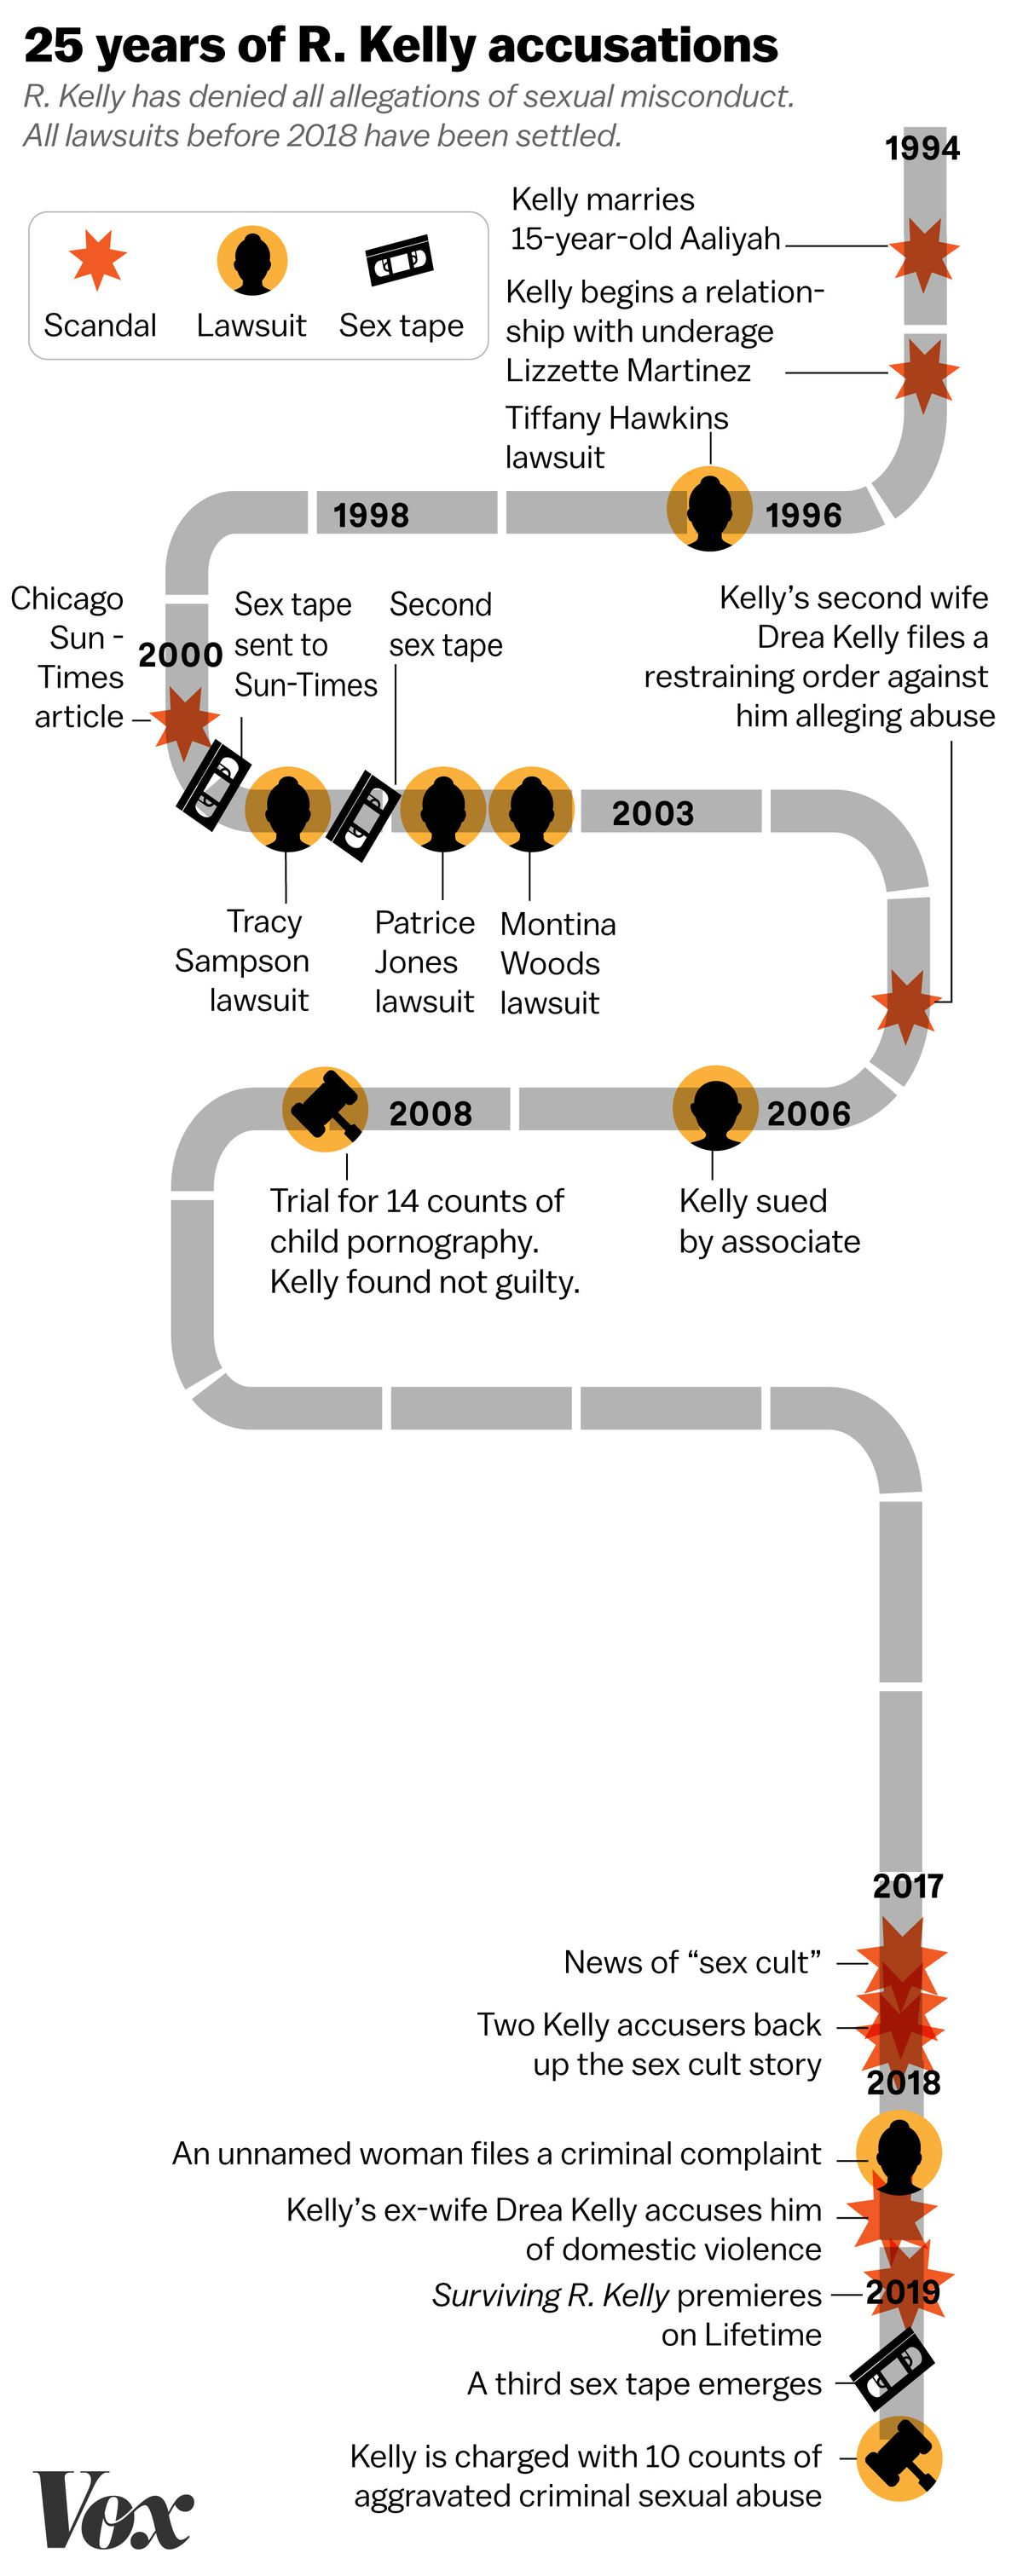 Timeline of R. Kelly accusations